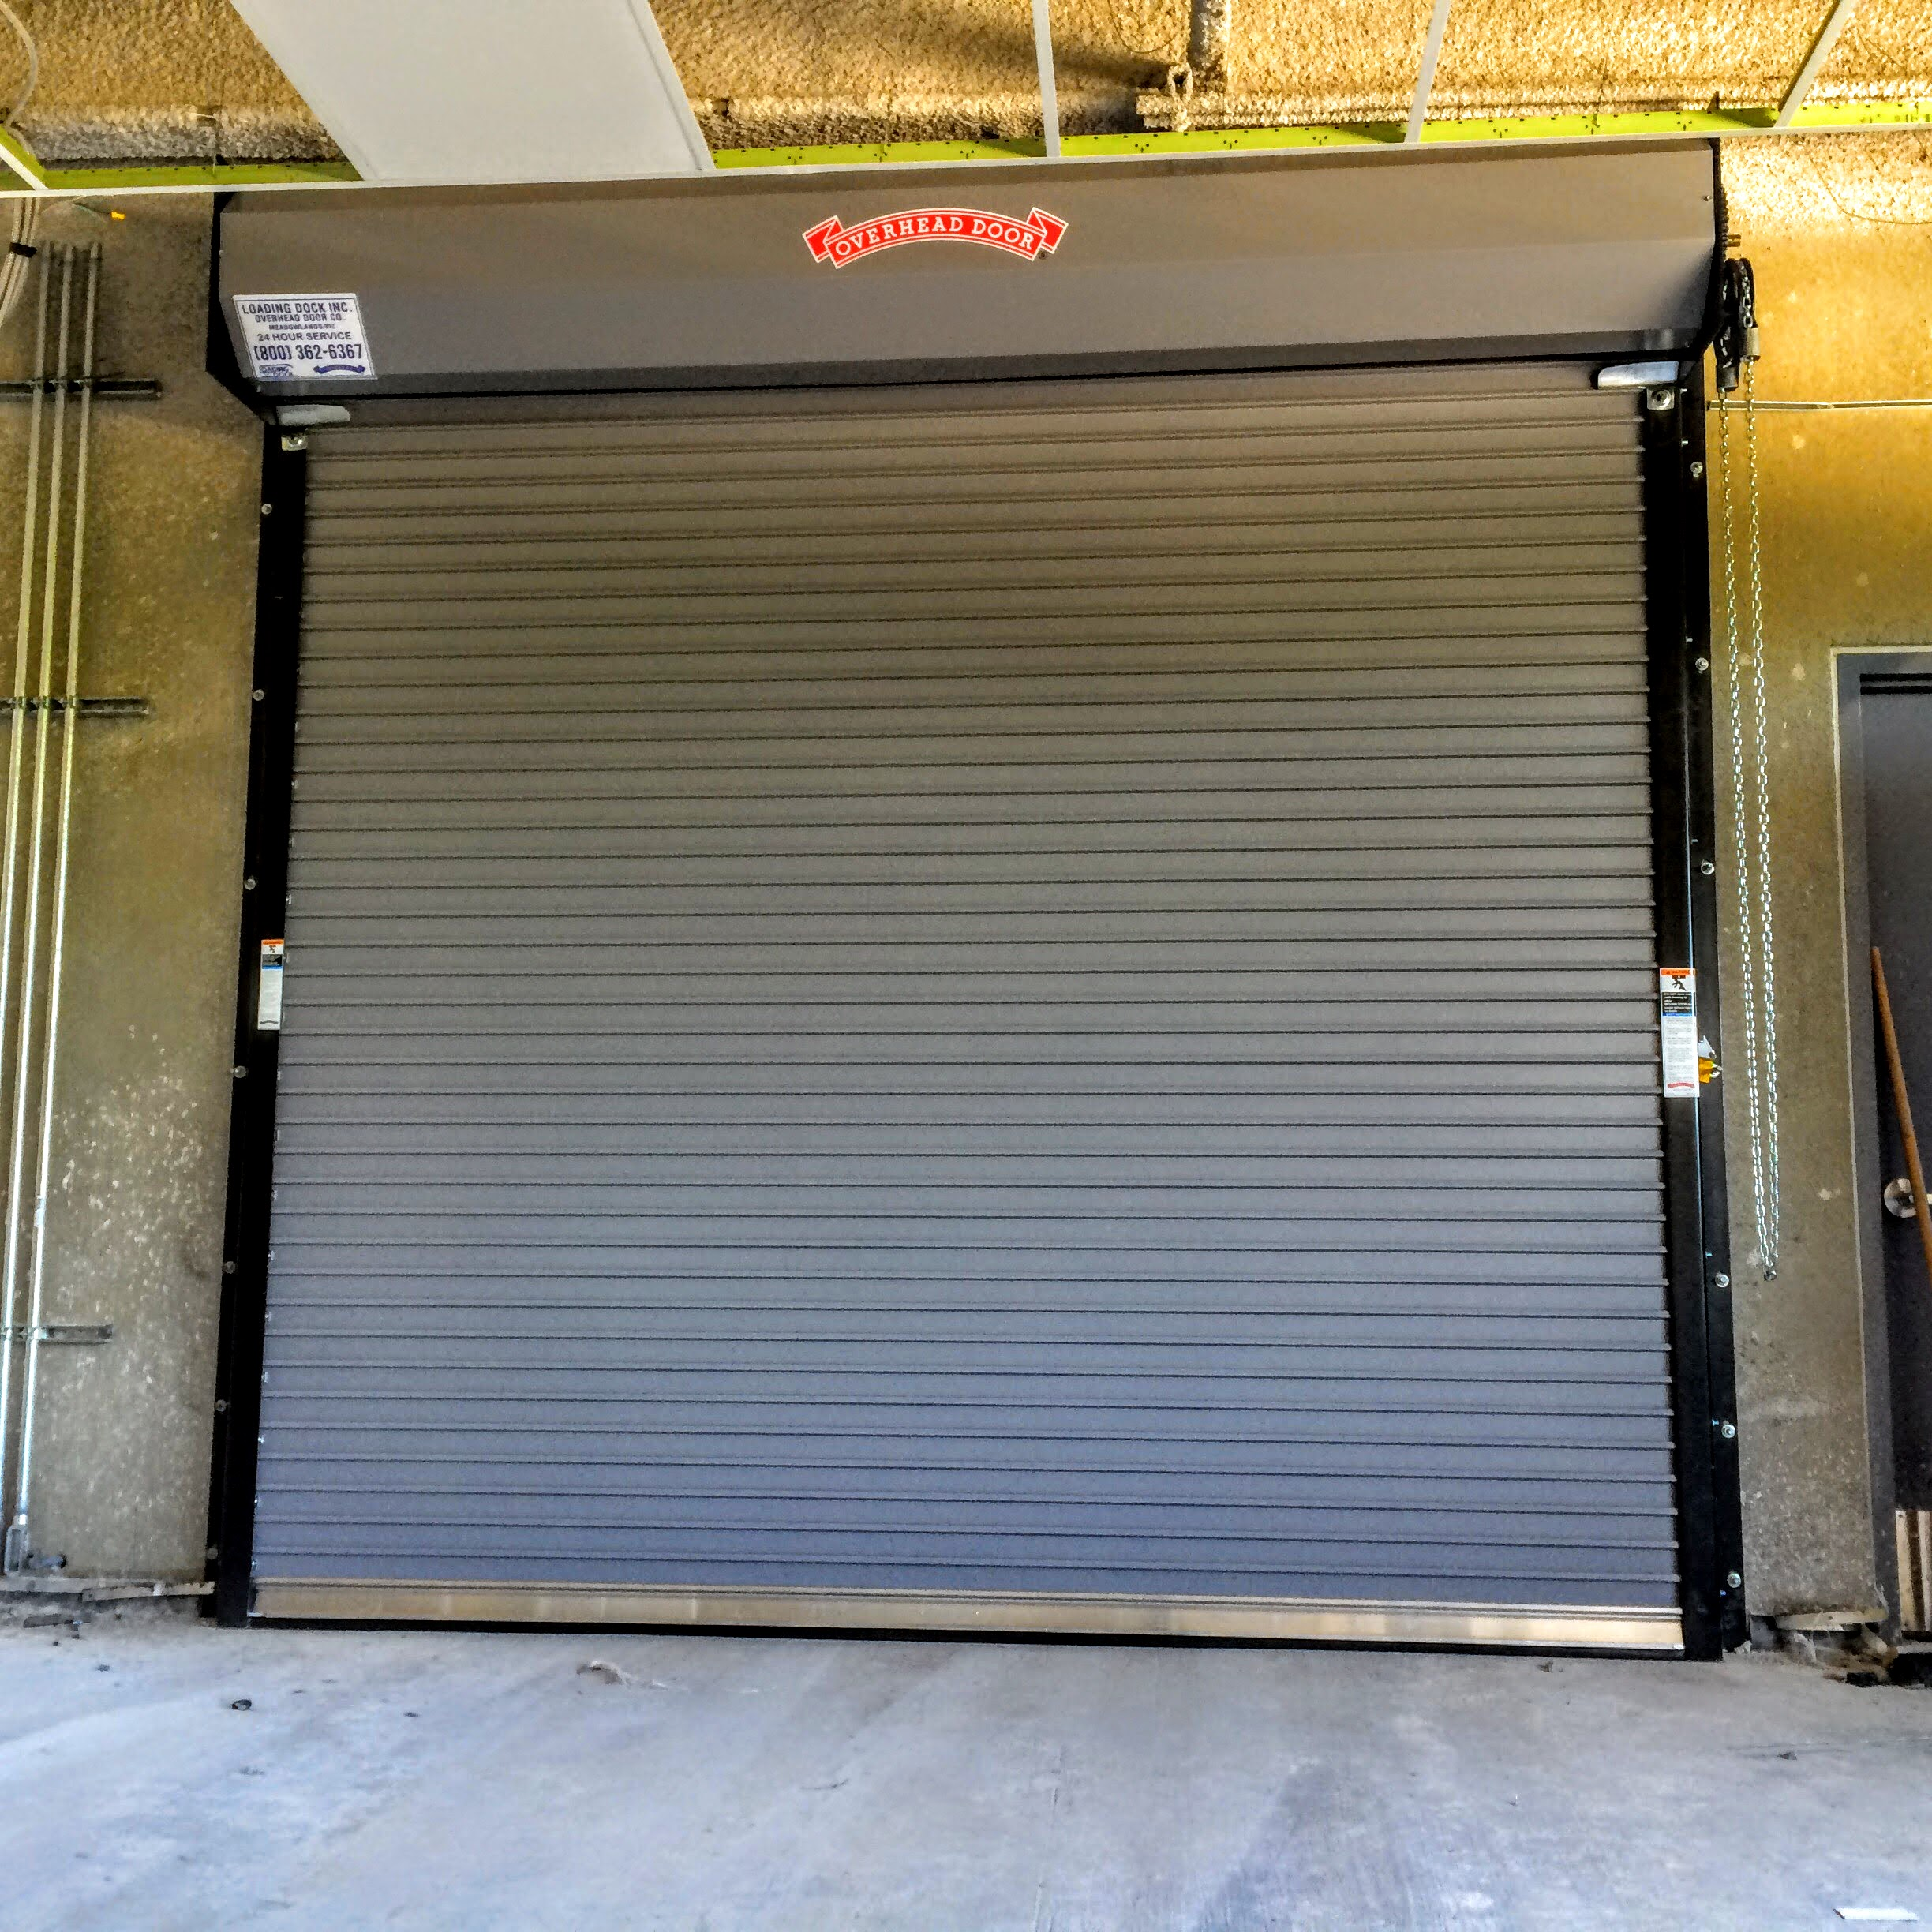 Non-insulated roll down gate with weatherized seals and chain hoist & Rolling Steel Doors